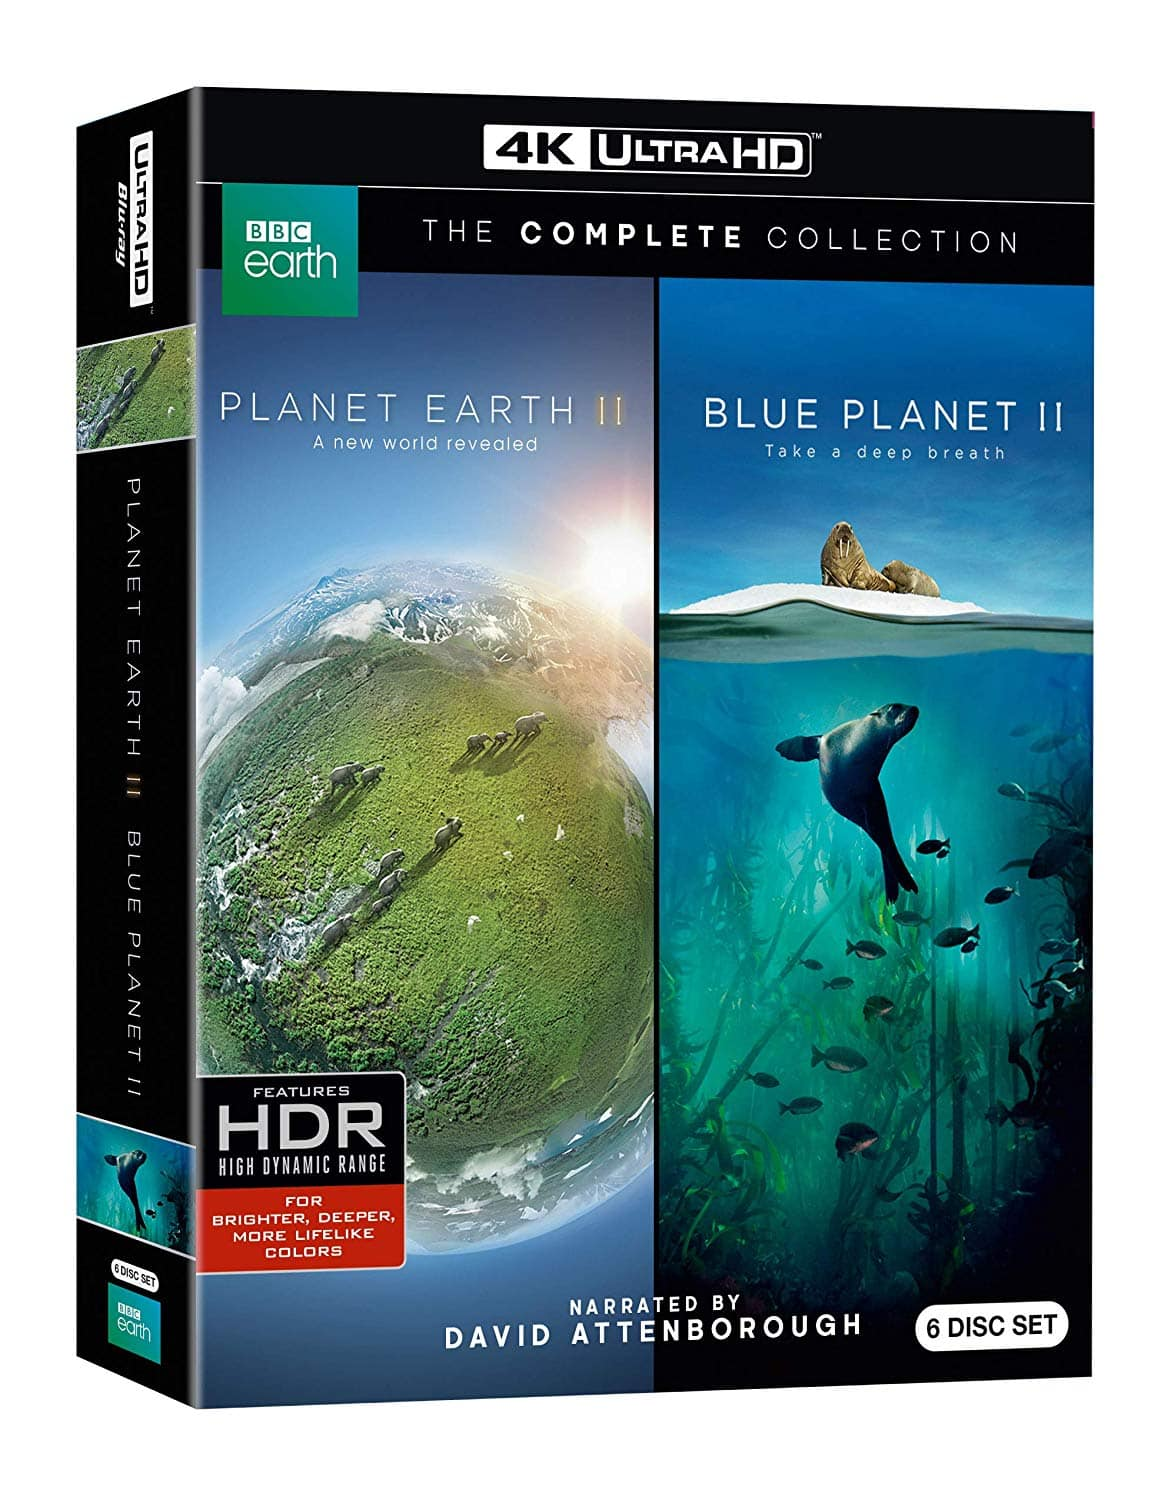 planet earth ii blue planet ii collection 4k uhd blu. Black Bedroom Furniture Sets. Home Design Ideas